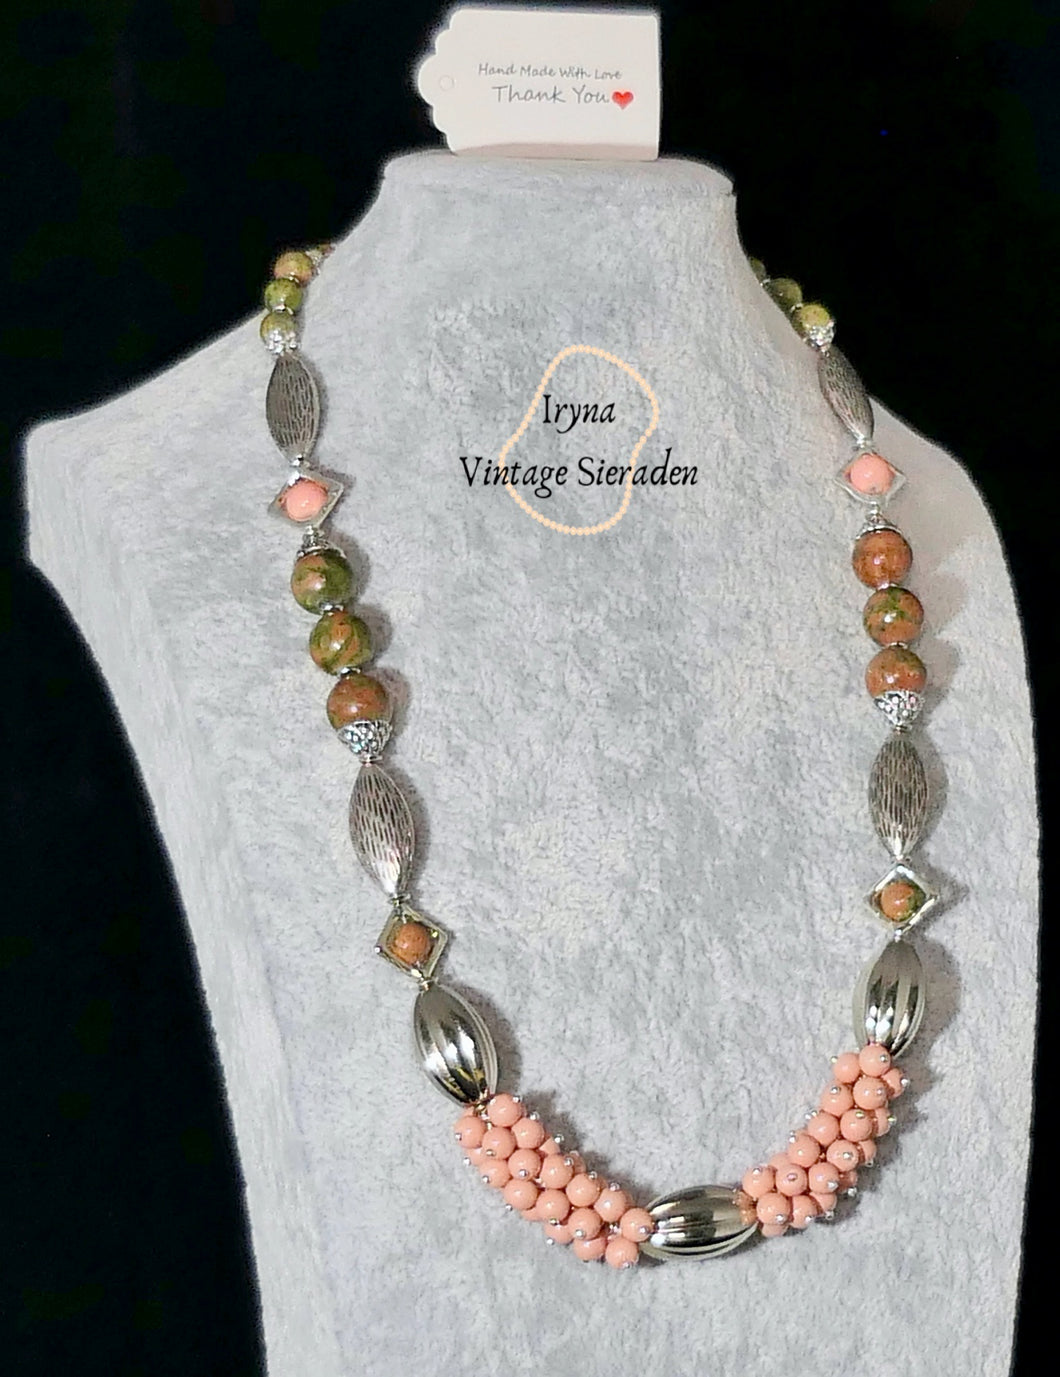 Necklace with Gemstones - Unakite and Agates